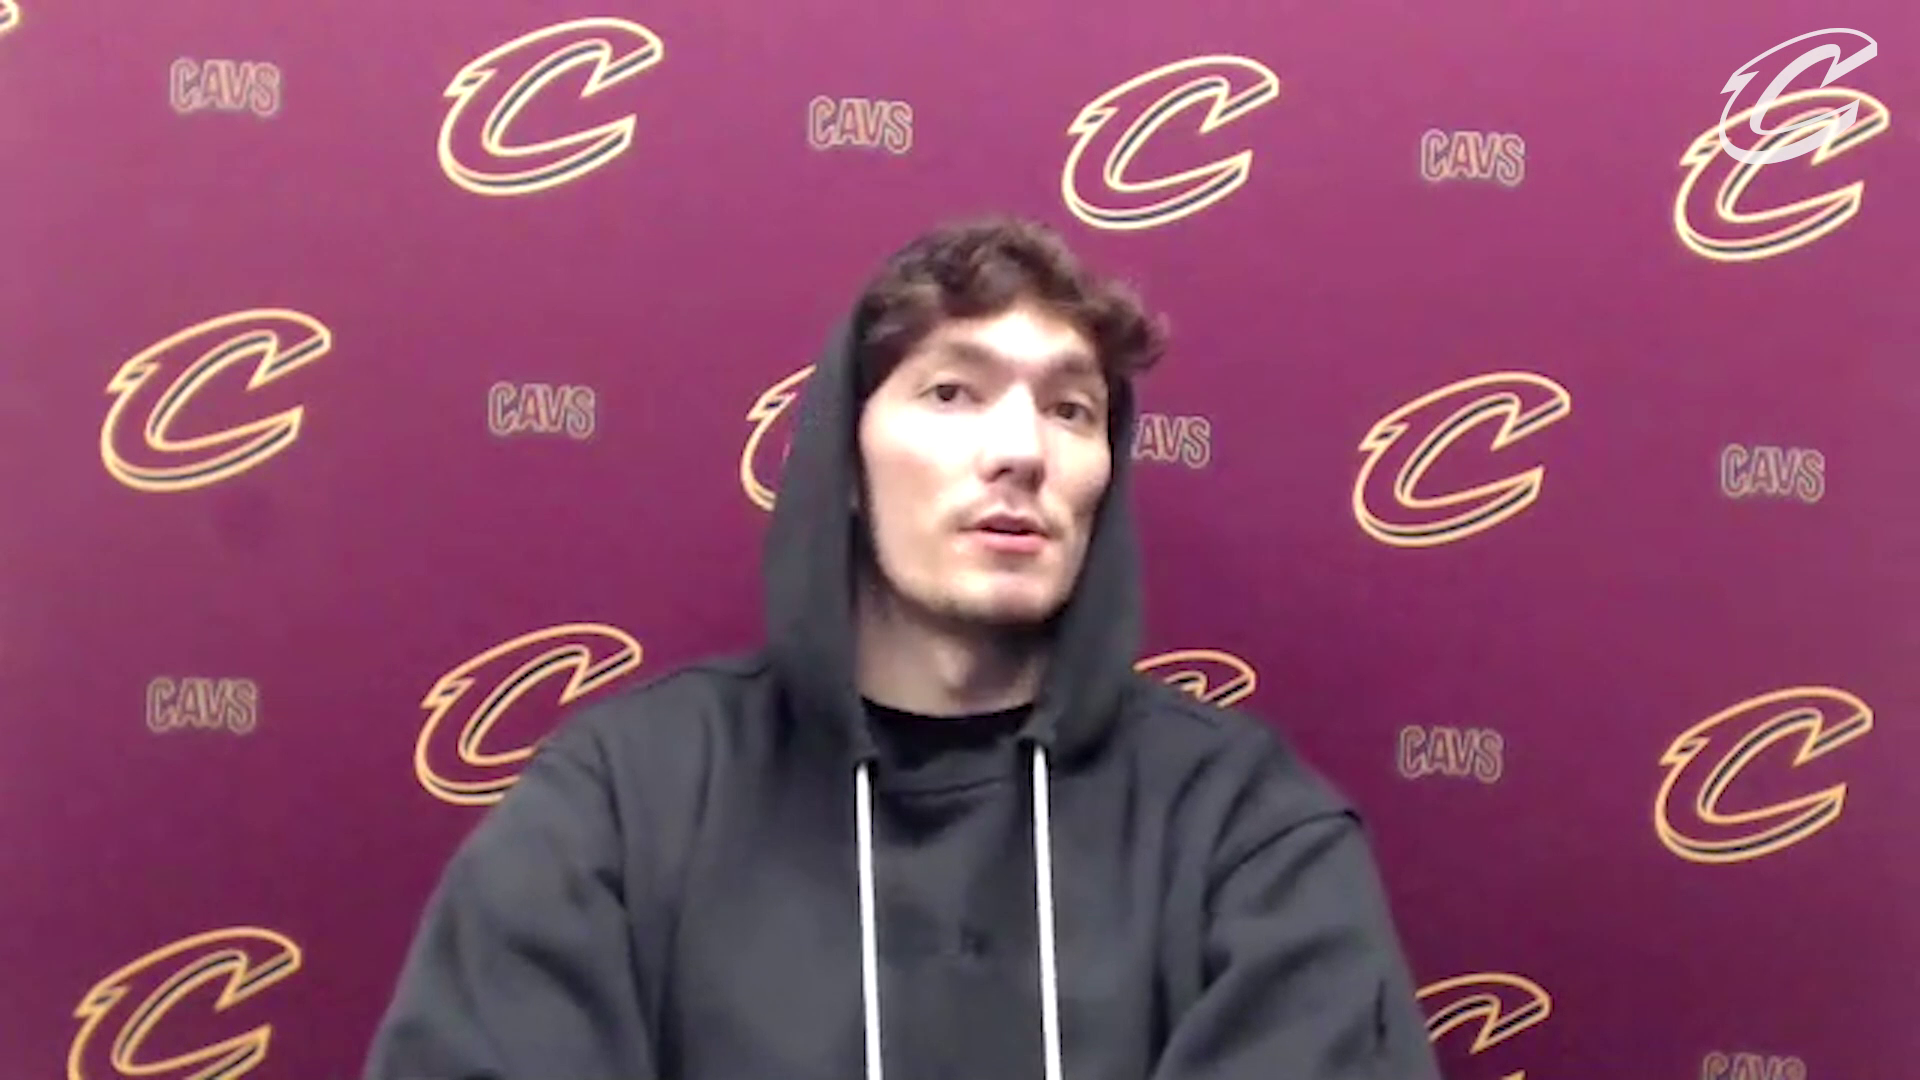 Cavs at Mavericks Postgame: Cedi Osman